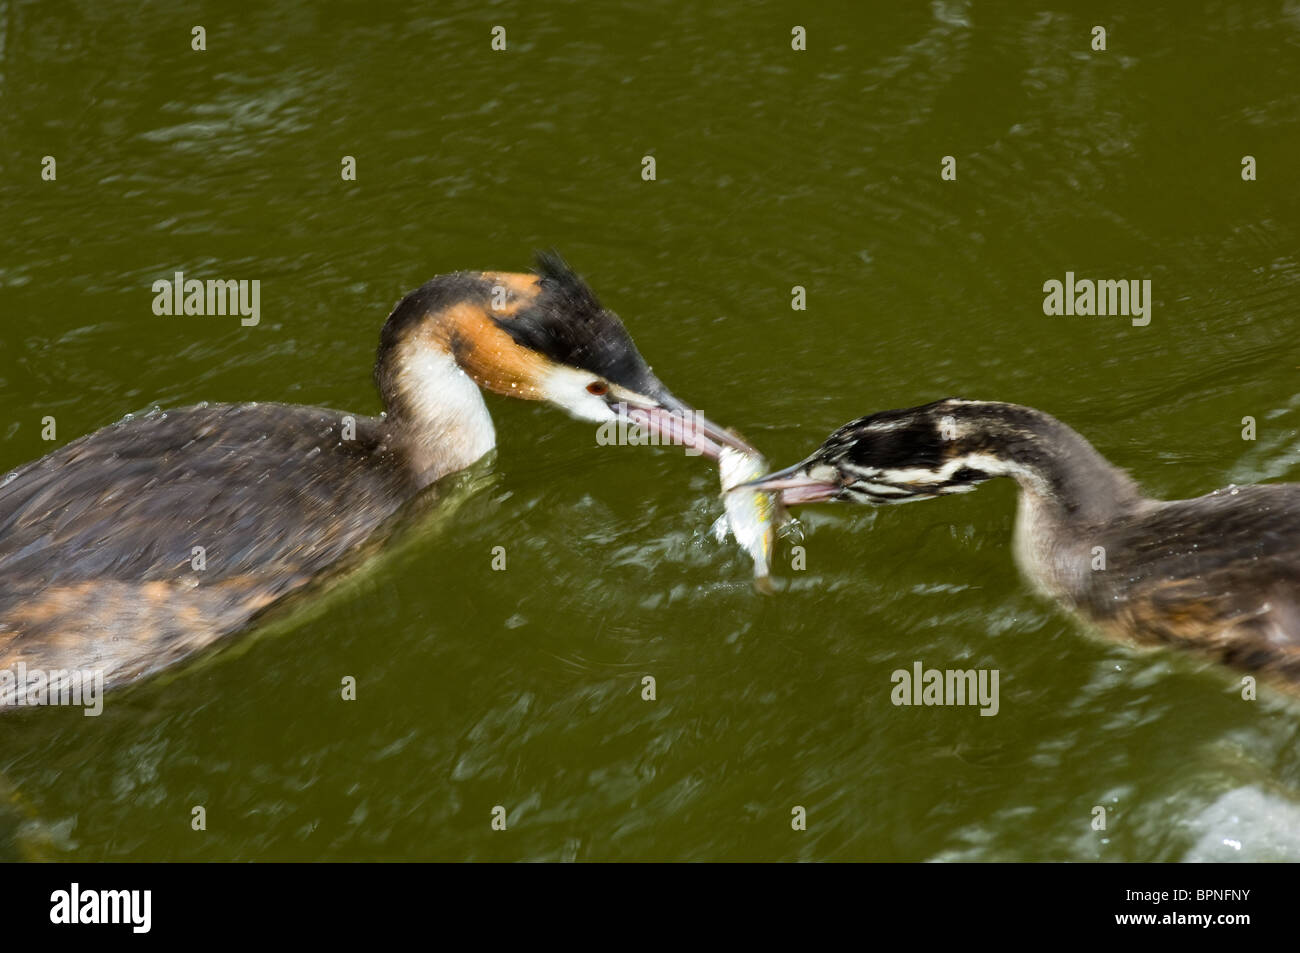 Adult Great Crested Grebe feeding a fish to a young chick - Stock Image